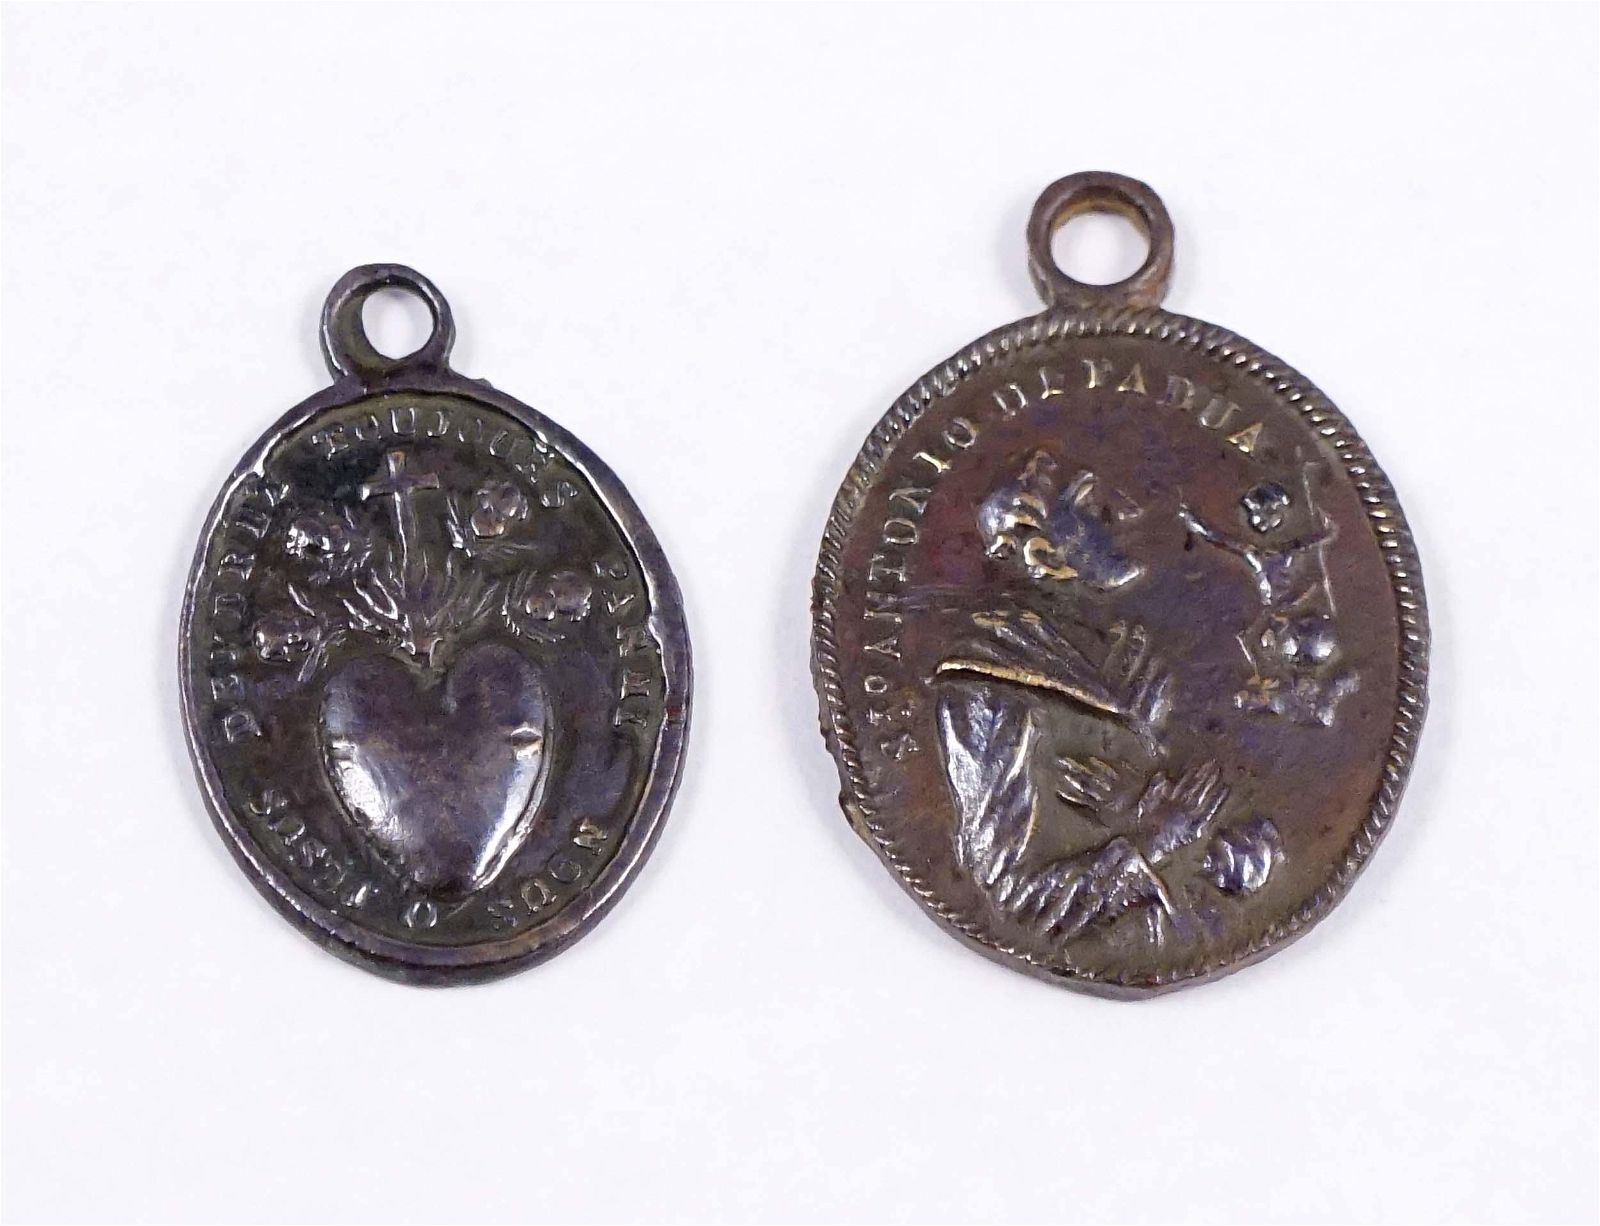 CANADA 1800-1900 A lot of 2 Religious Medals Used in